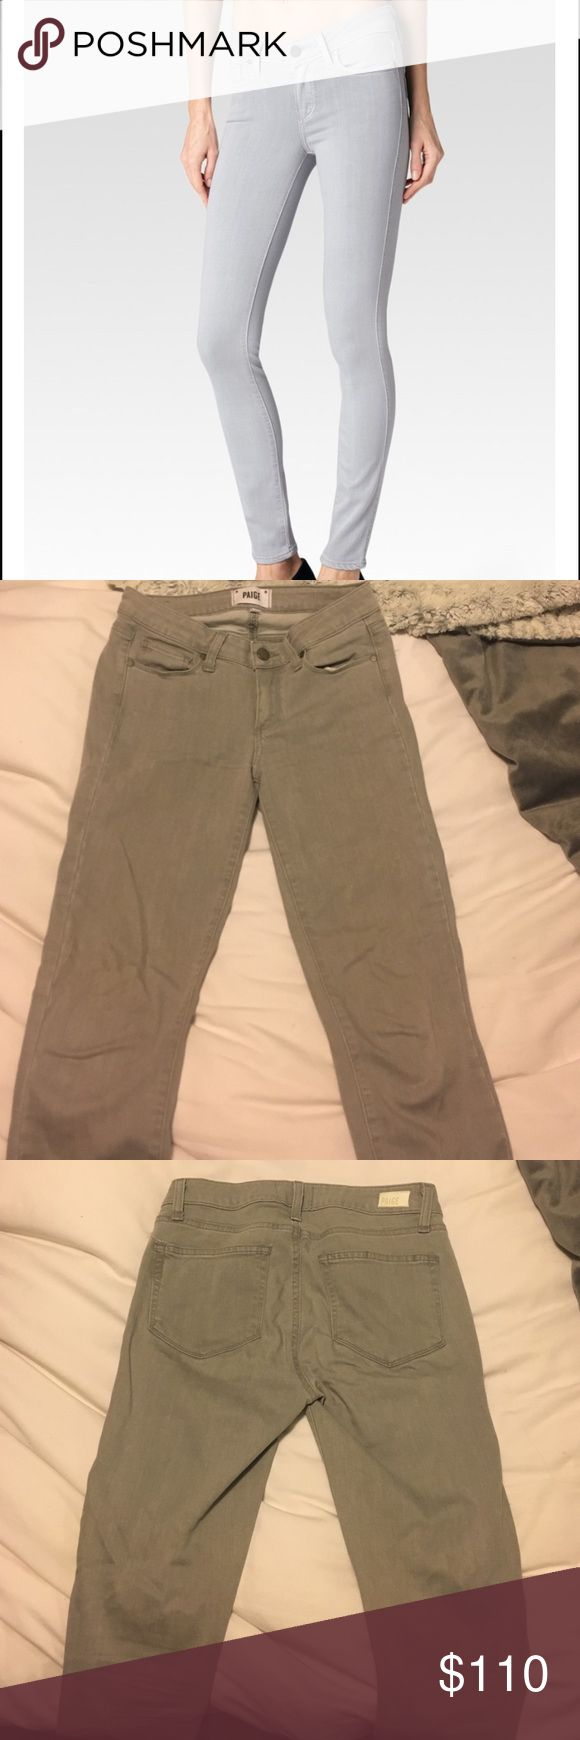 Paige Verdugo Crop Skinny Jeans in French Grey New and only worn once! Super soft Paige Verdugo Crop Skinny Jeans. Jeans end about mid calf (shorter than what is pictured). Fits a 27 perfectly! Paige Jeans Jeans Ankle & Cropped